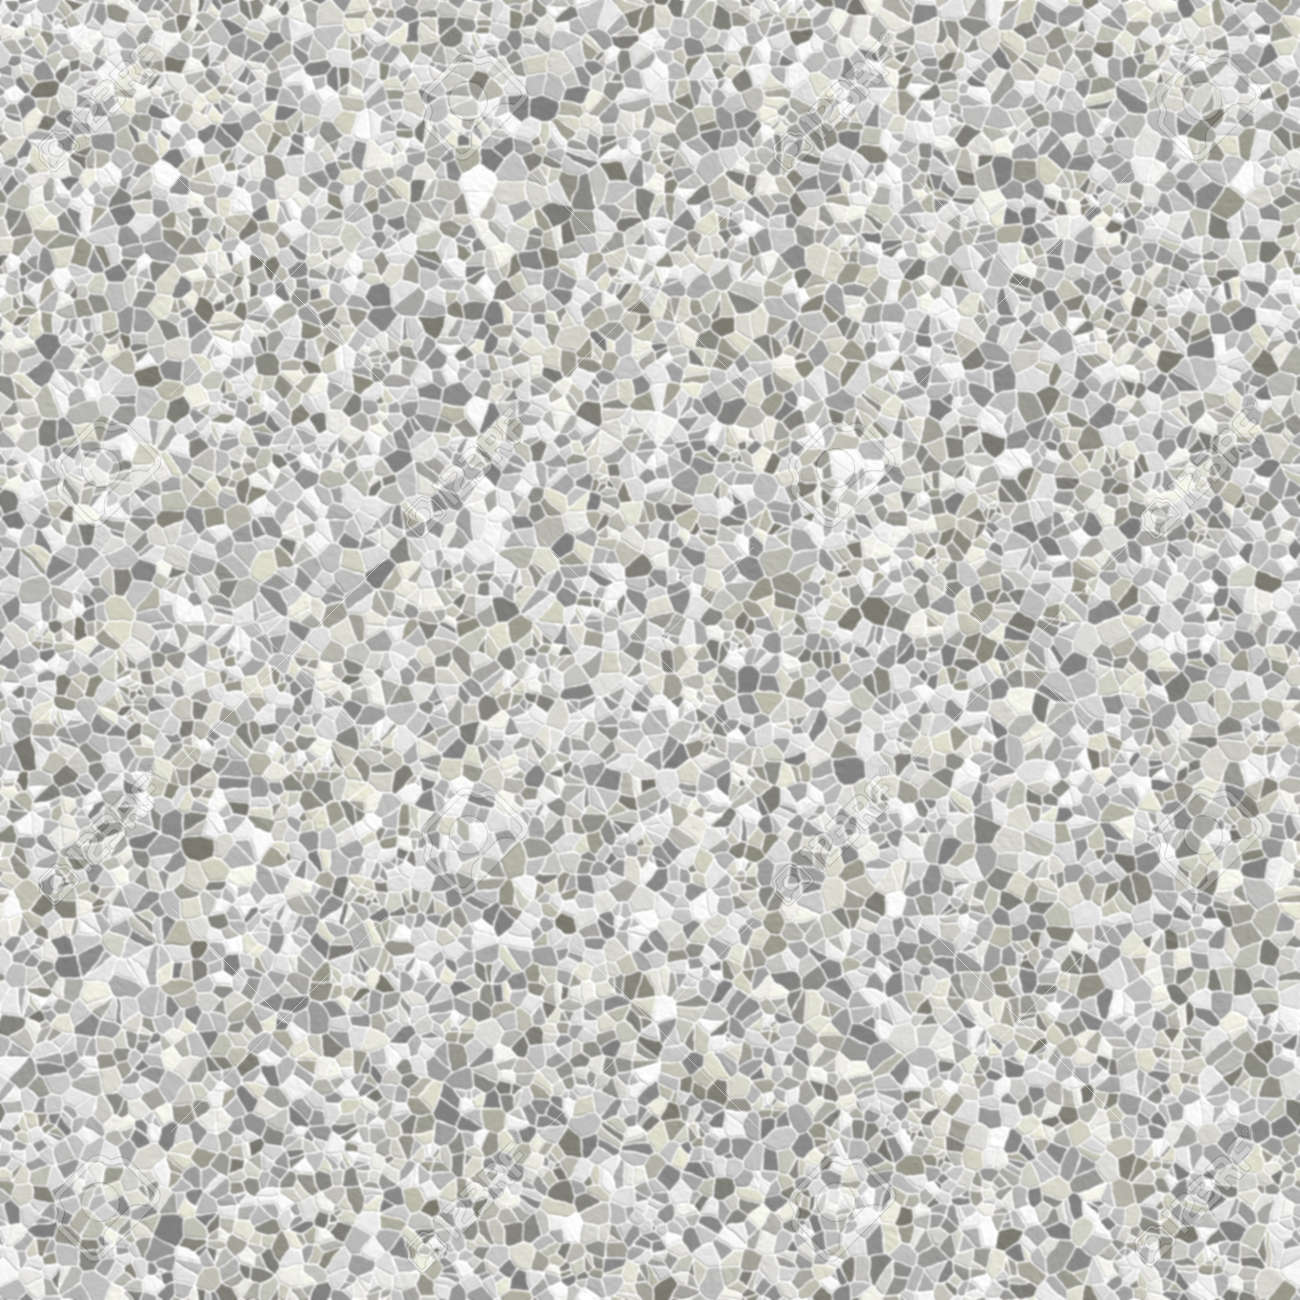 Terrazzo Floor Seamless Texture Tile Stock Photo, Picture And ...